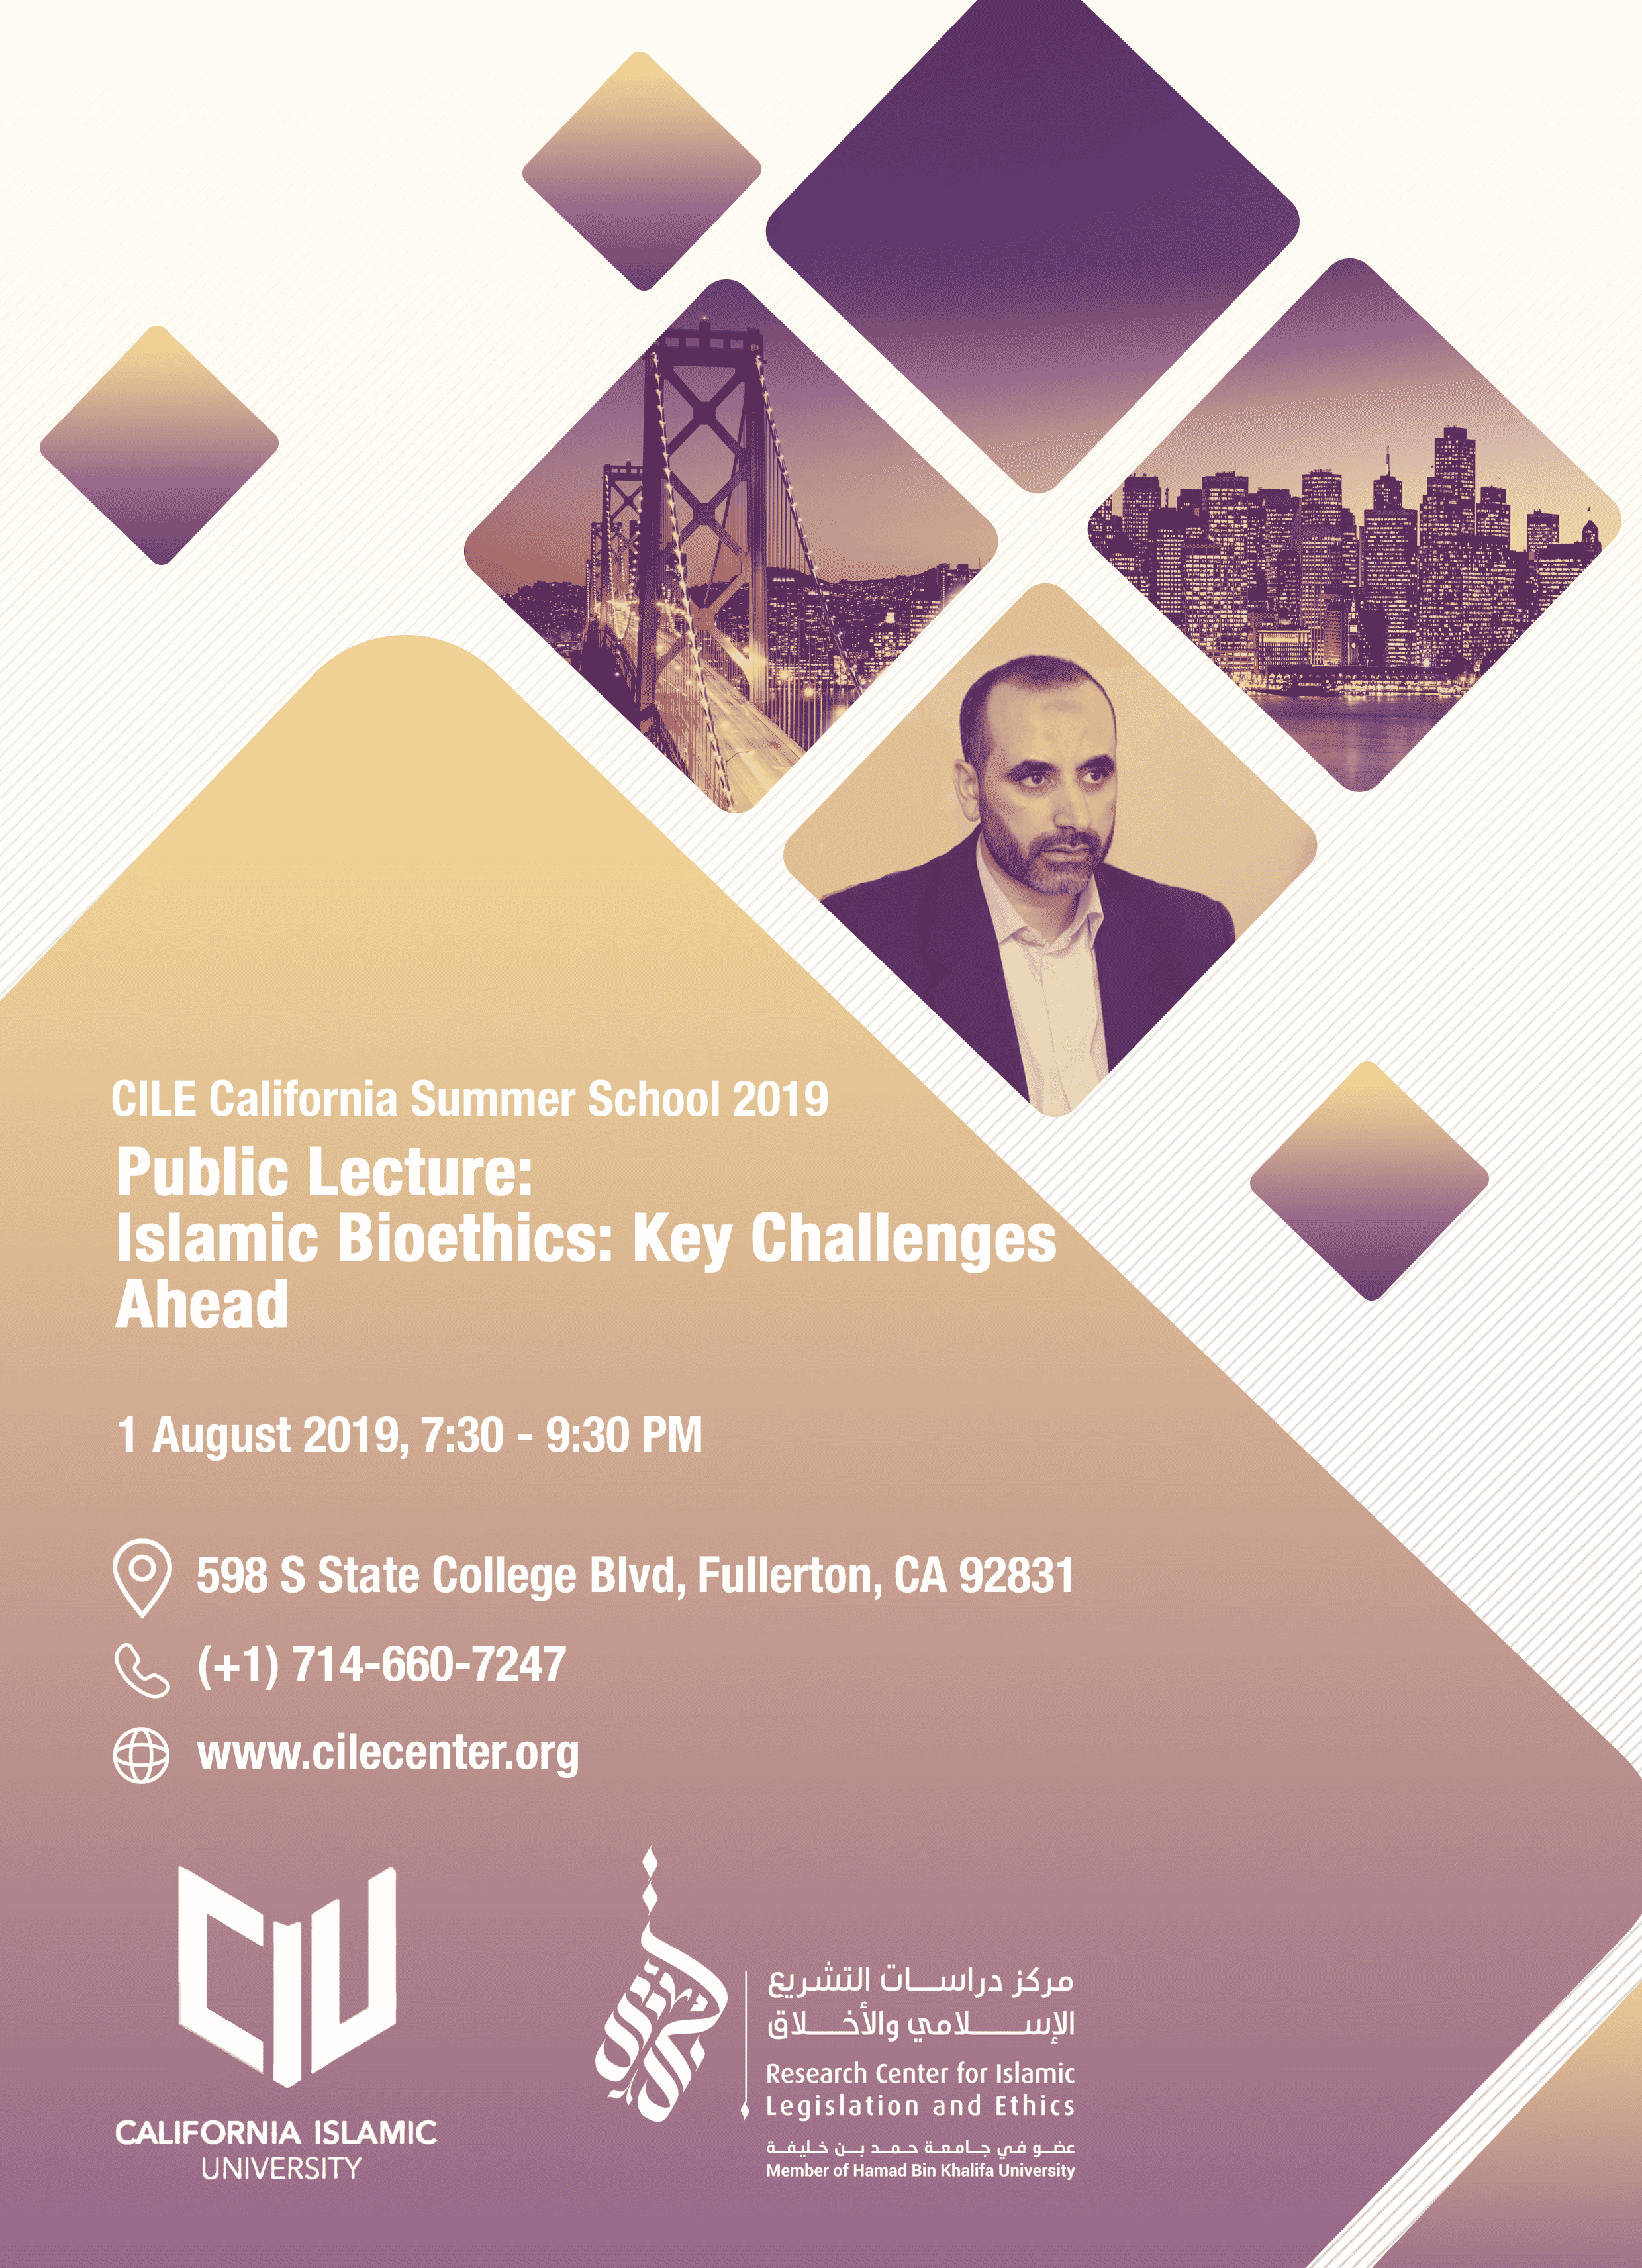 Invitation Lecture: Islamic Bioethics: Key Challenges Ahead